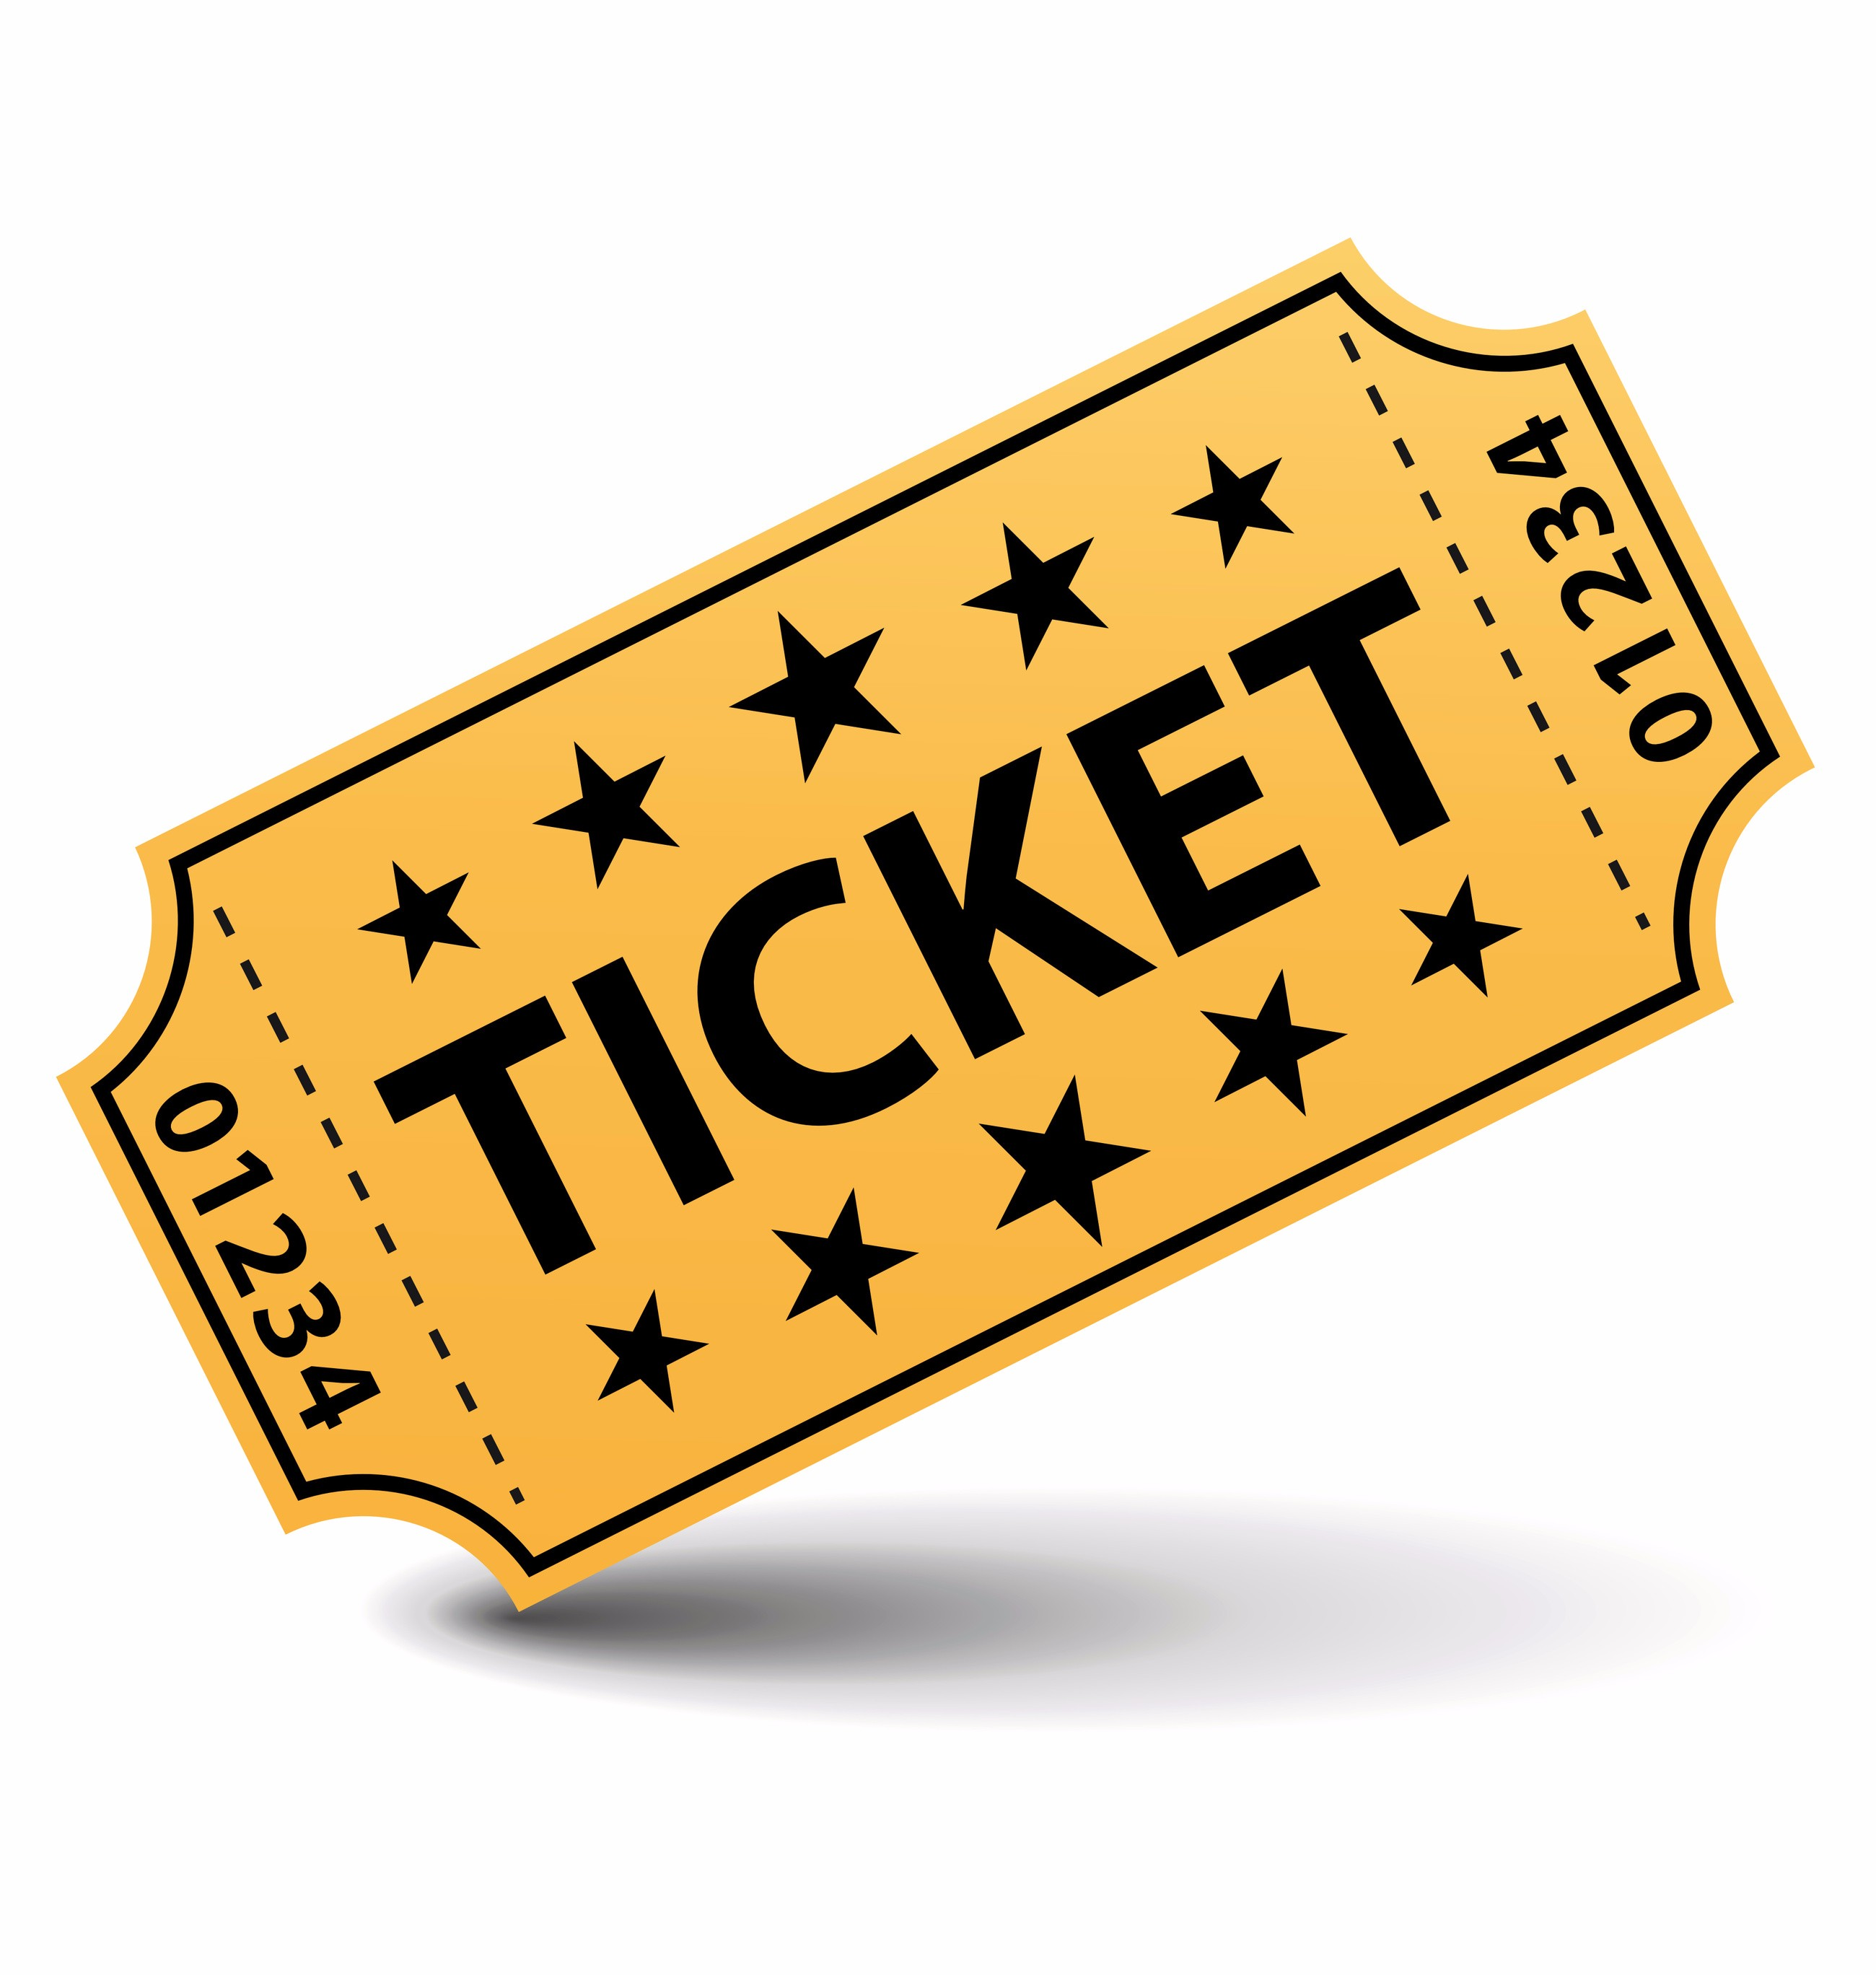 Ticket clipart. Drawing incep imagine ex